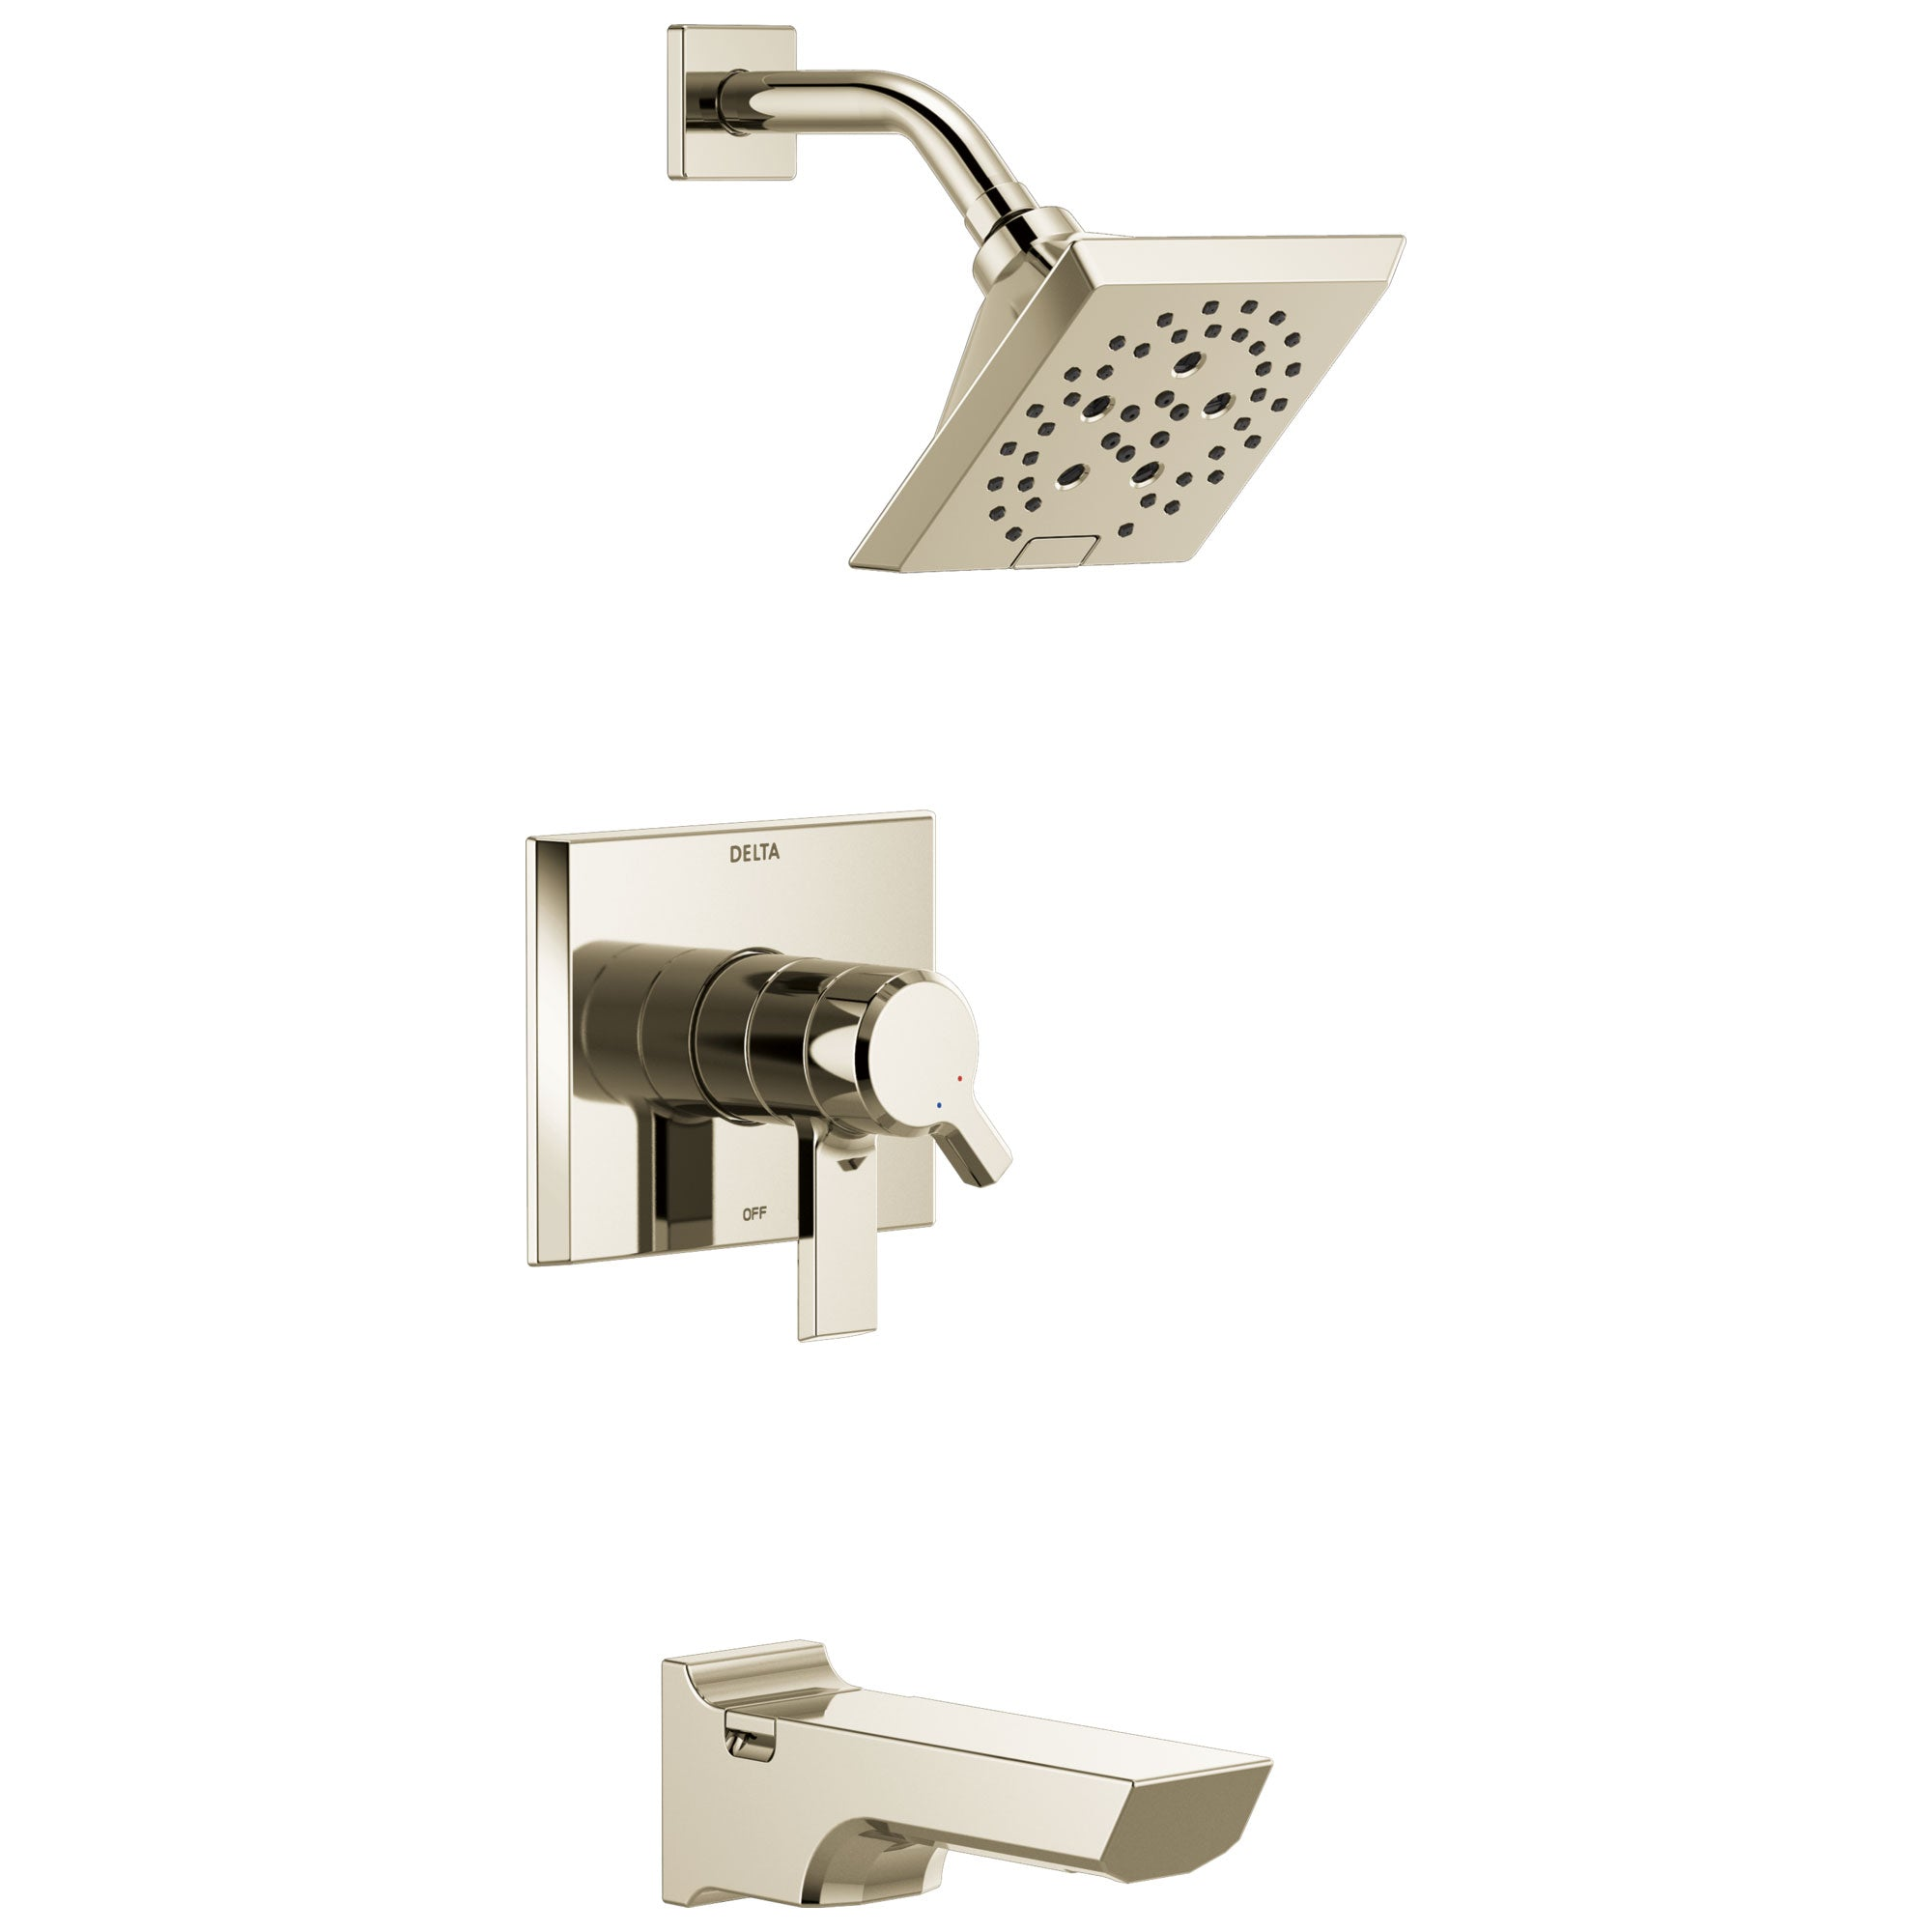 Delta Pivotal Polished Nickel Finish Monitor 17 Series H2Okinetic Tub and Shower Combination Faucet Trim Kit (Requires Valve) DT17499PN